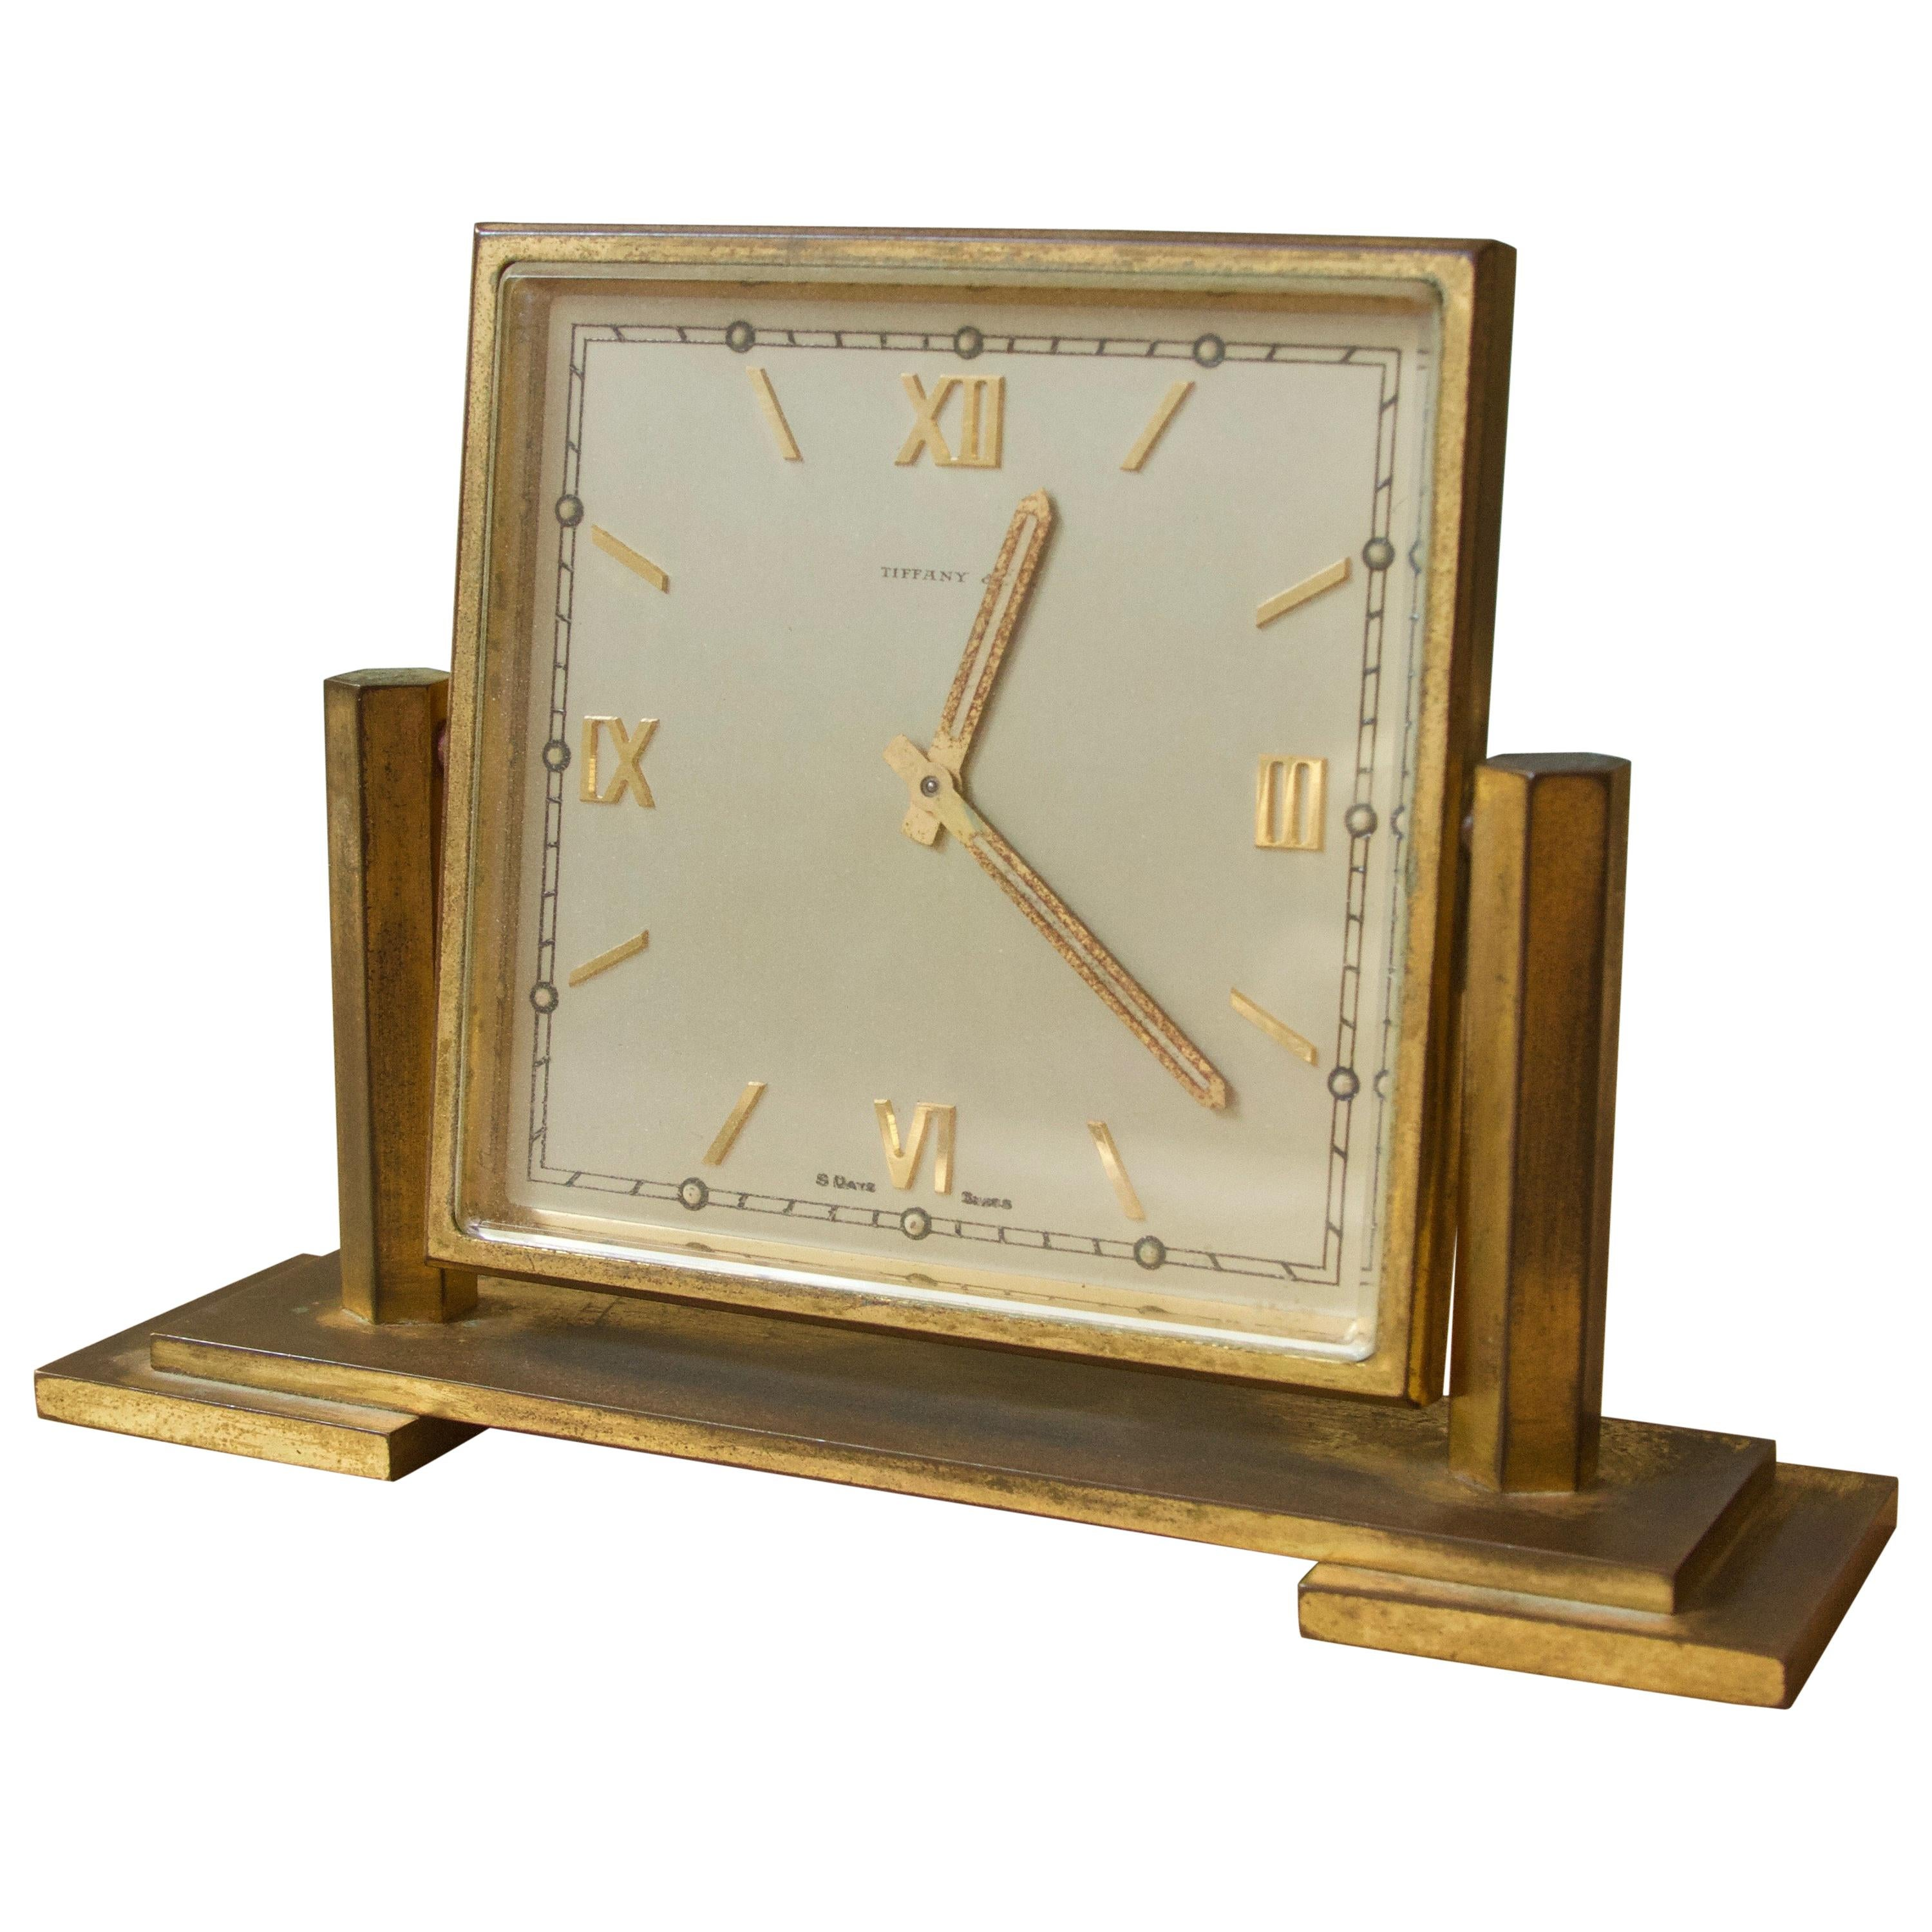 Vintage Tiffany and Co. Square Brass Desk Clock, 1970s